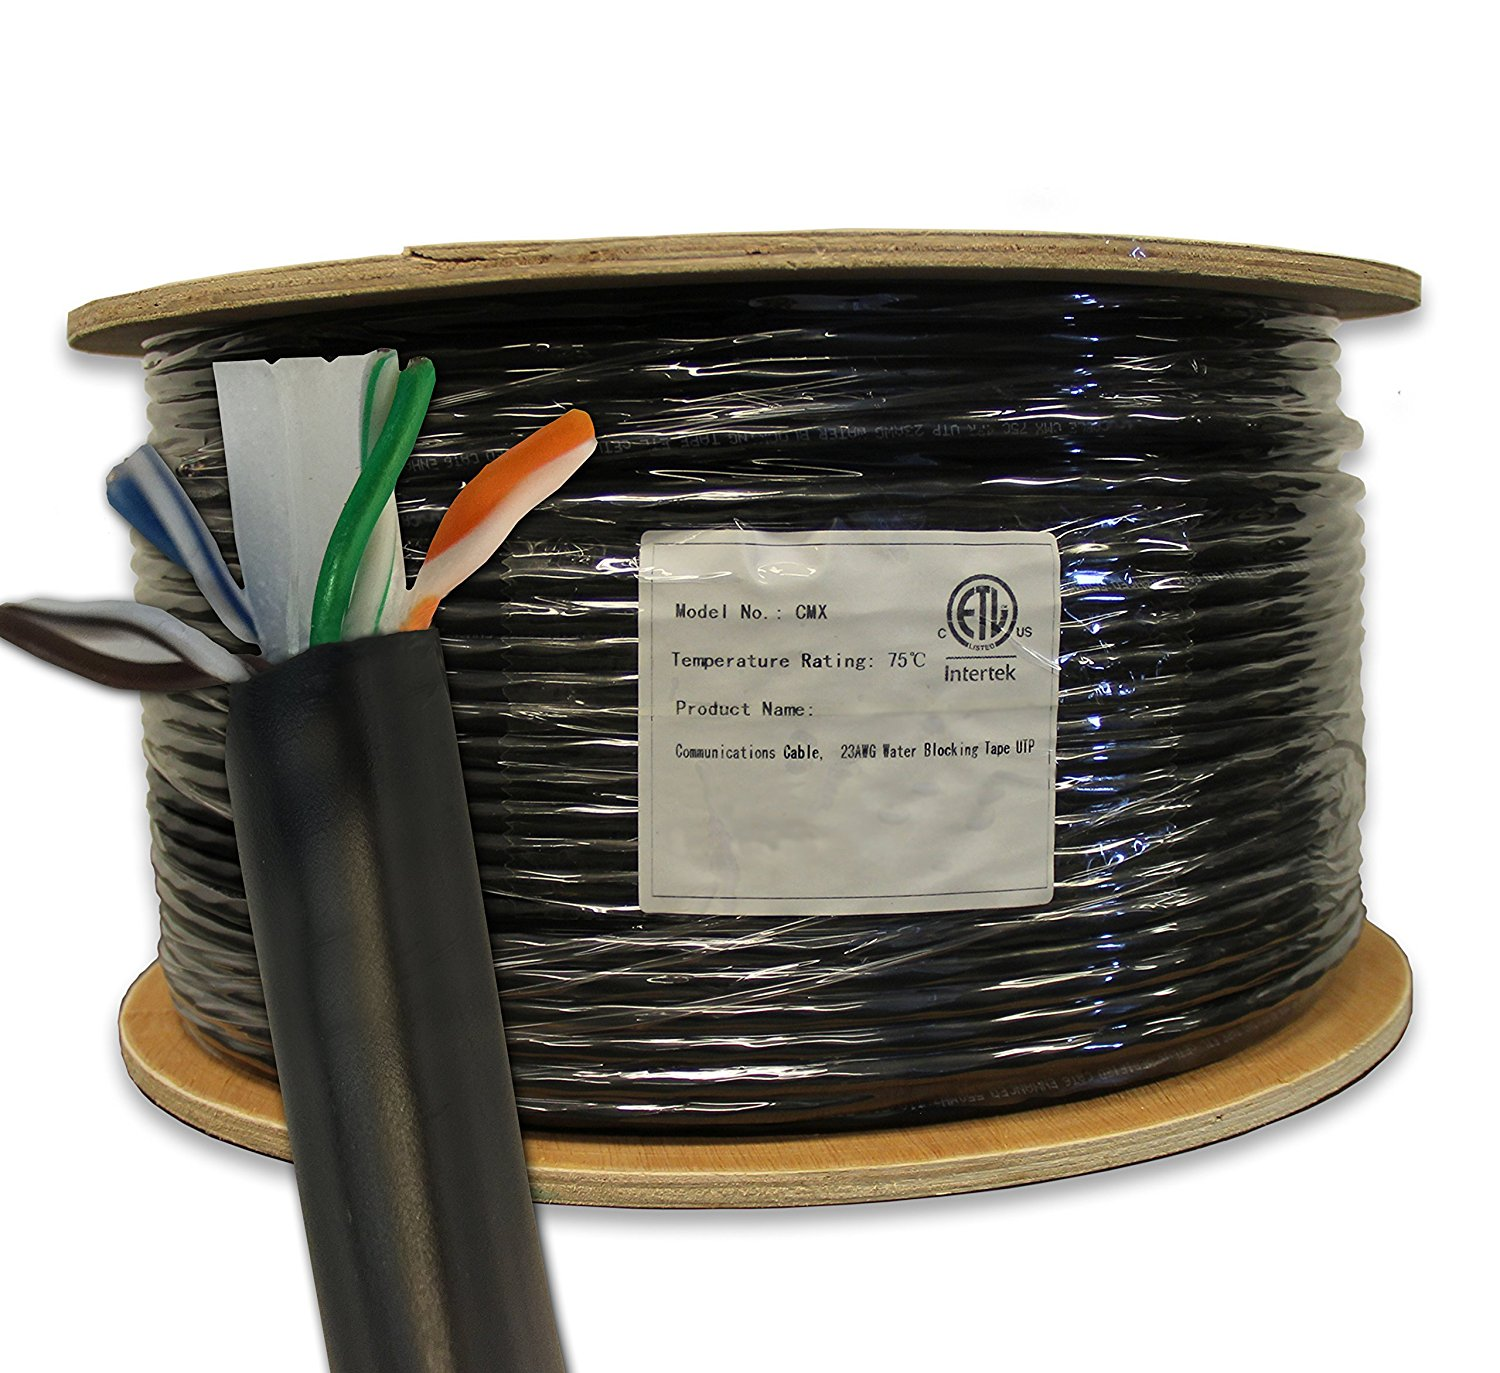 Cat6 Outdoor, 1000ft, Waterproof, Direct Burial Rated CMX, Unshielded UTP, Solid Bare Copper Bulk Ethernet Cable, 550MHz, ETL Listed, Black, trueCABLE